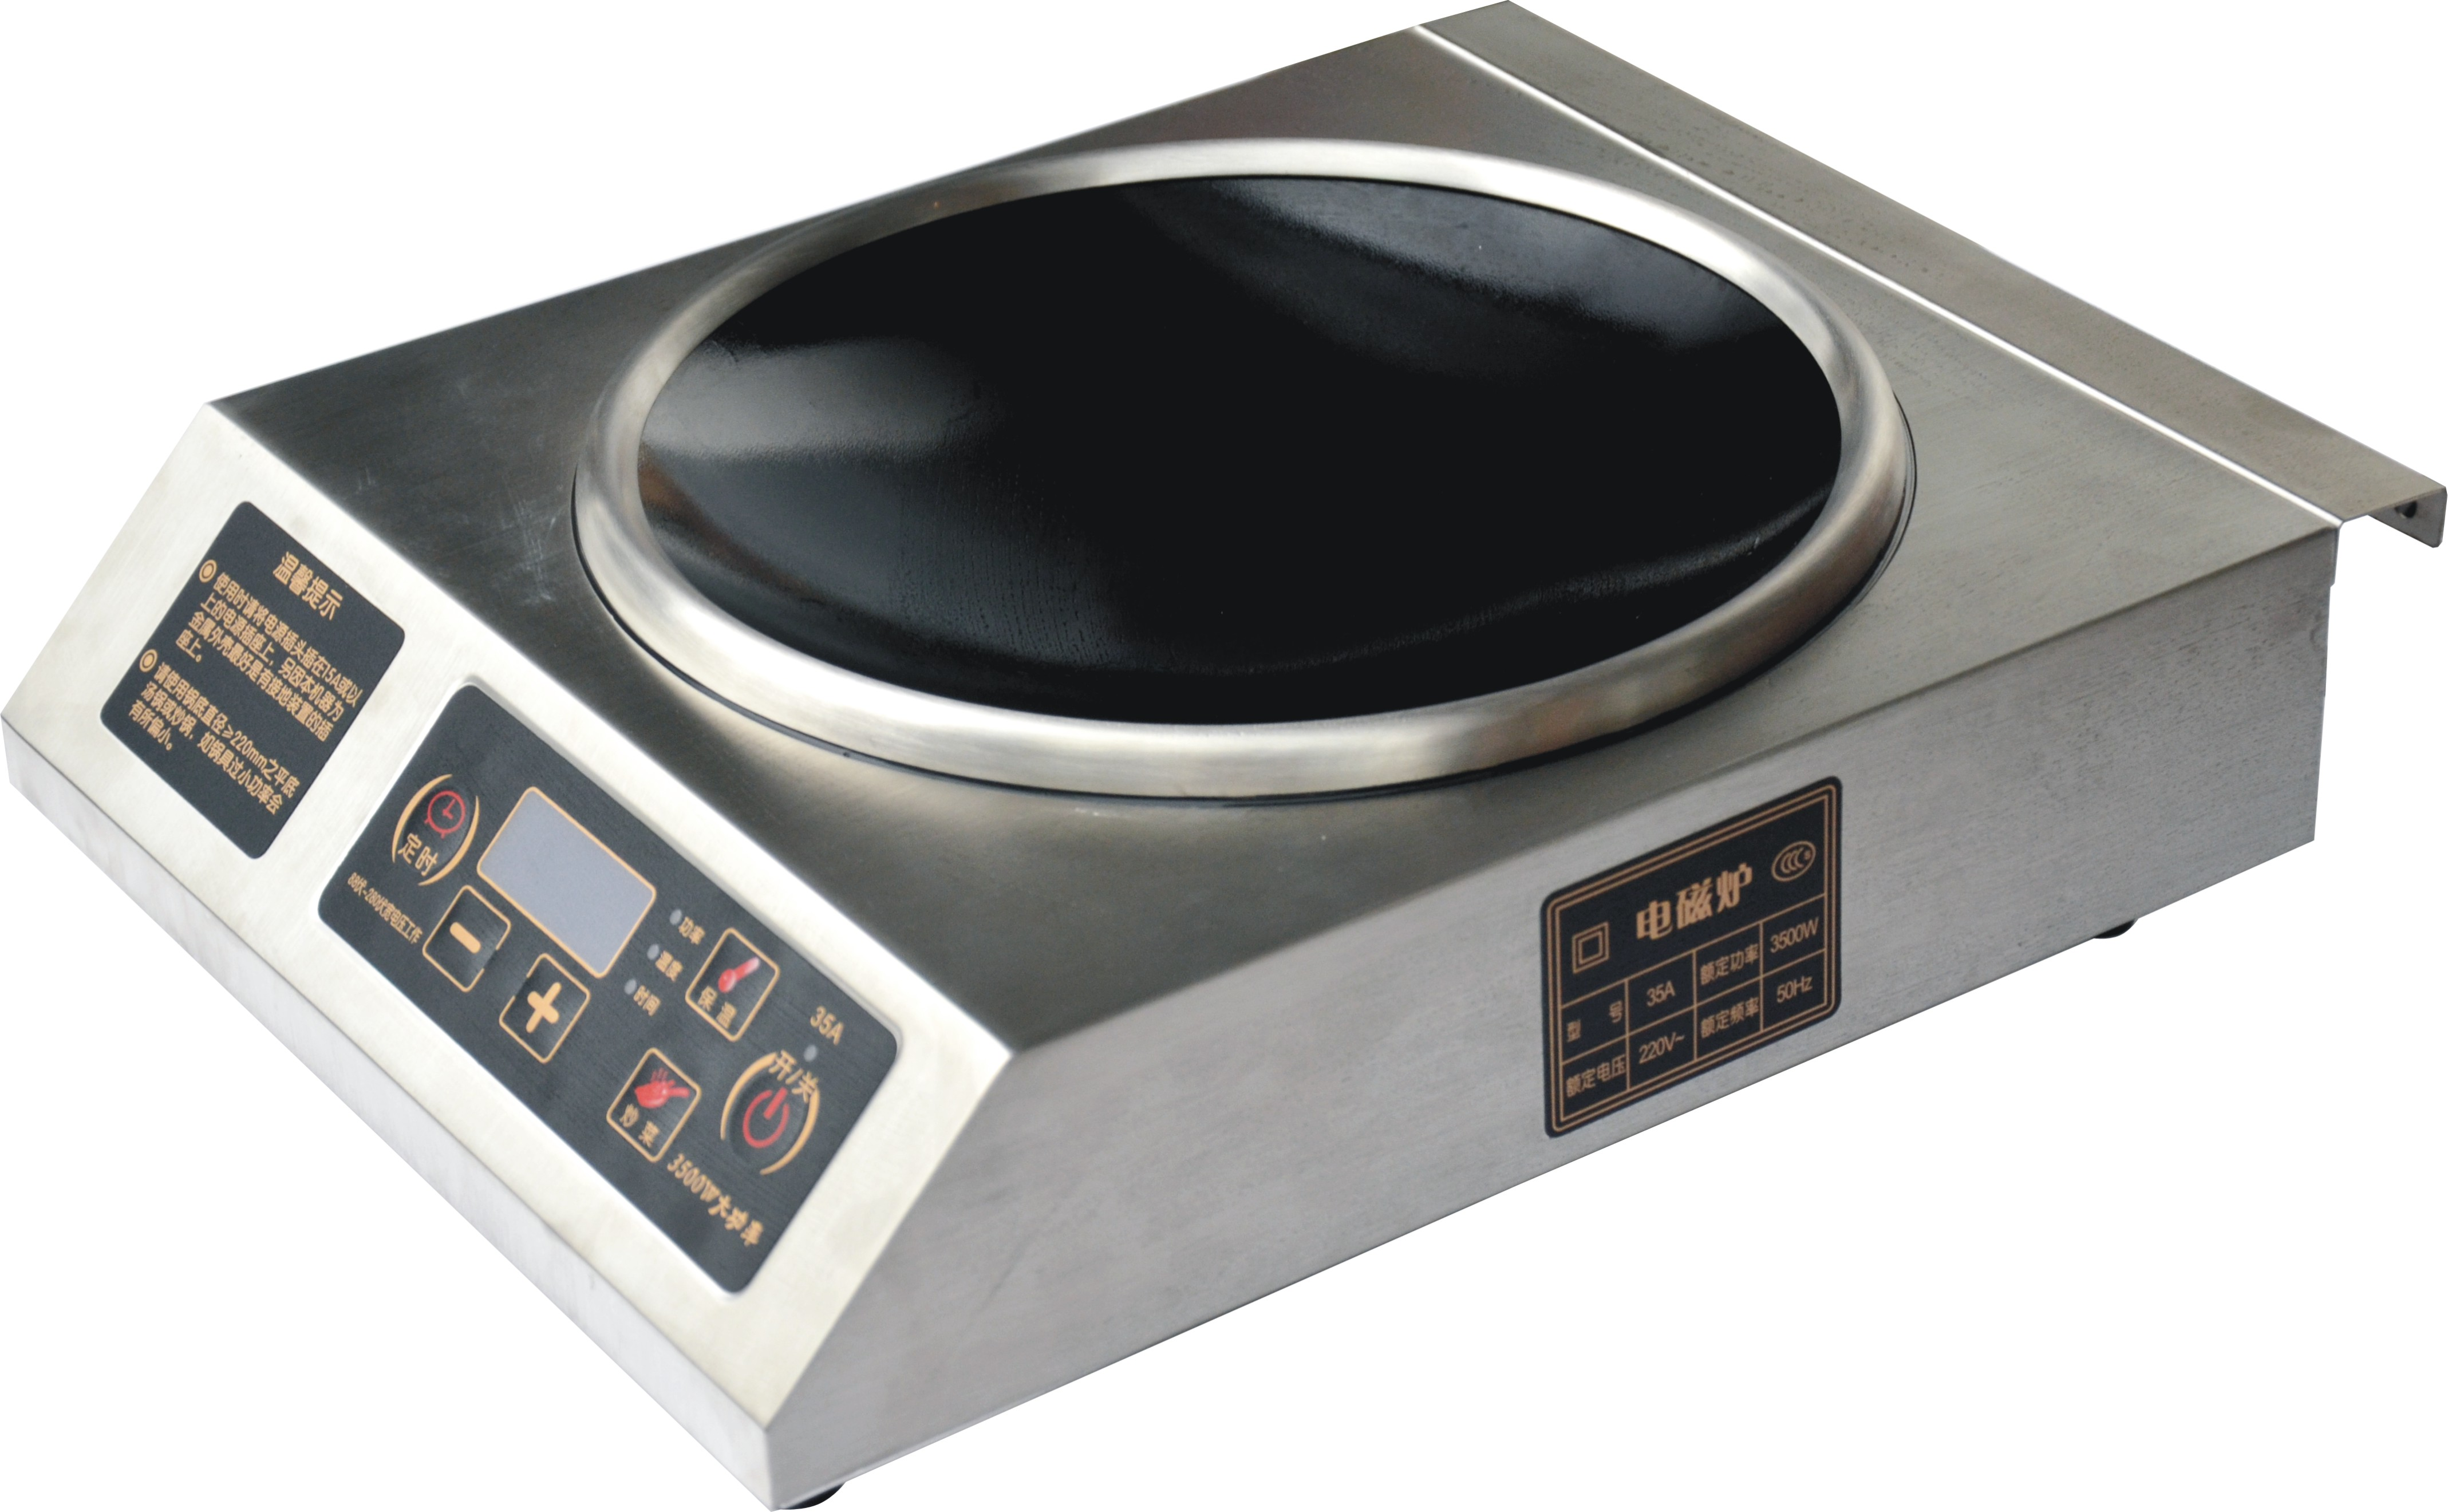 Table Top Induction Flat Range